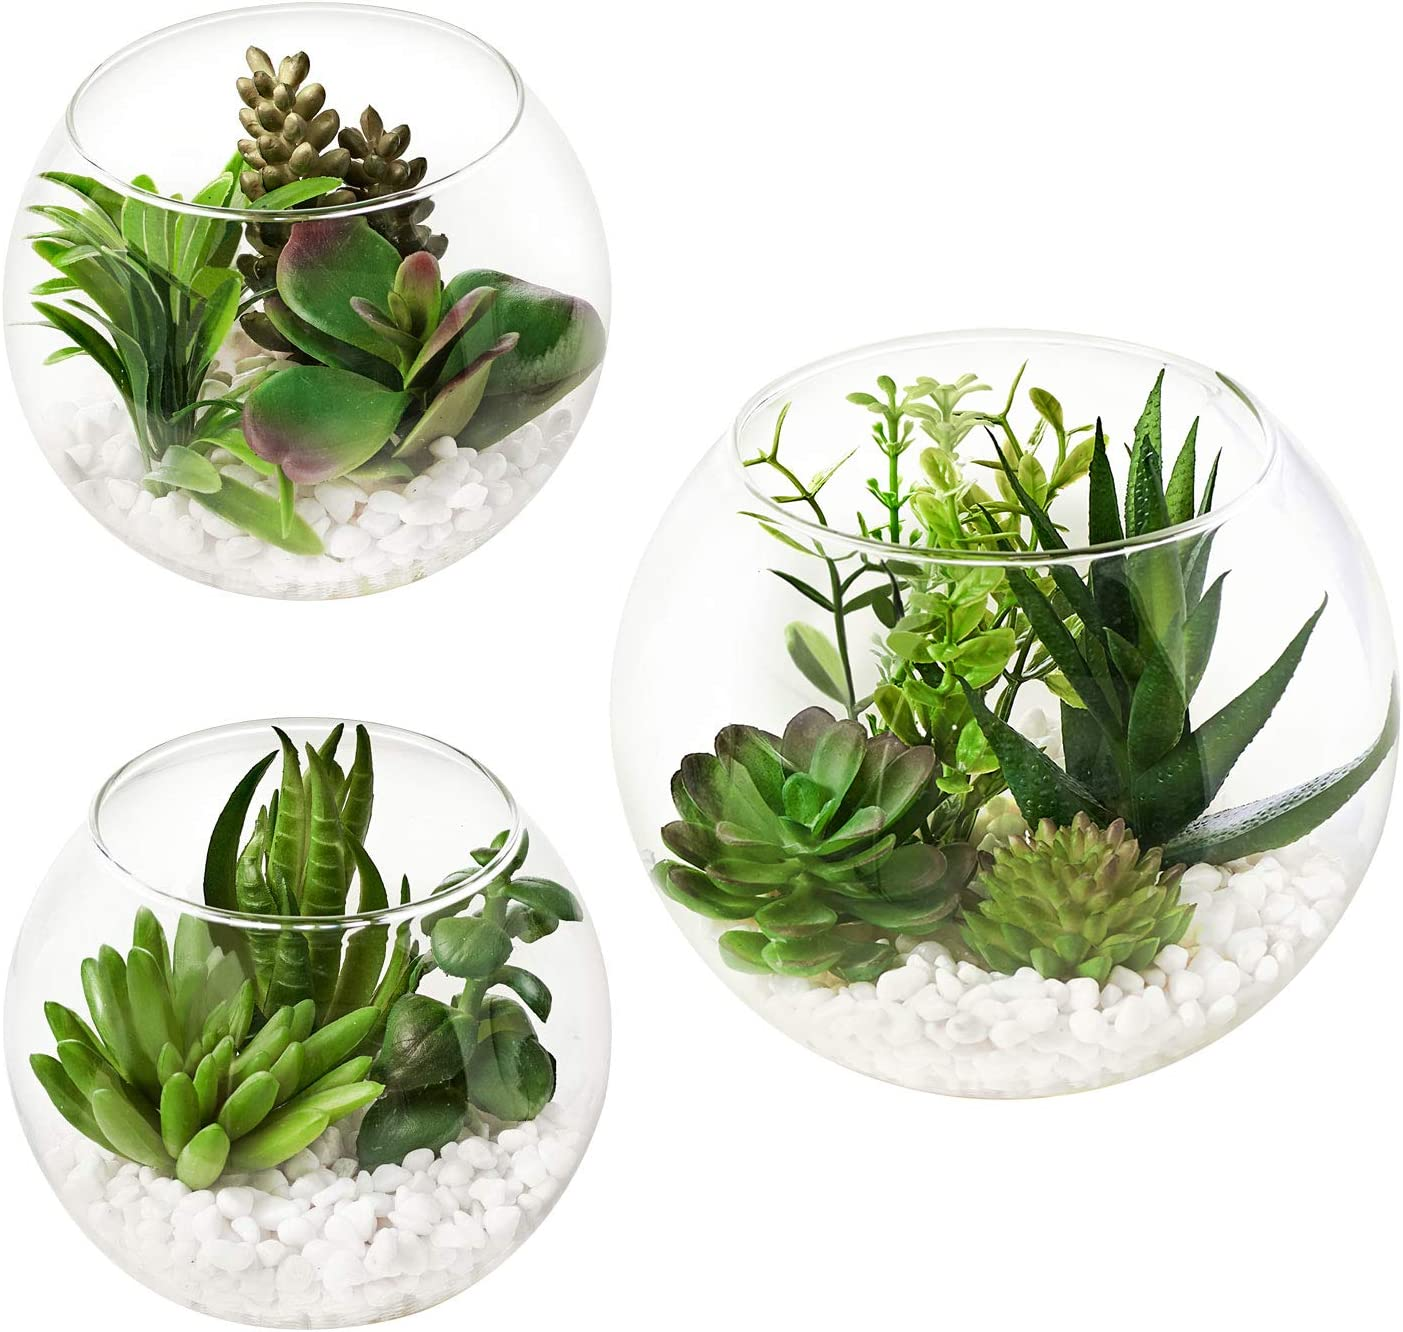 MOTINI Artificial Succulent Plants in Clear Glass Pot with Pebble, Set of 3 Potted Fake Succulent Realistic Tabletop Greenery Plants for Home and Office Decoration